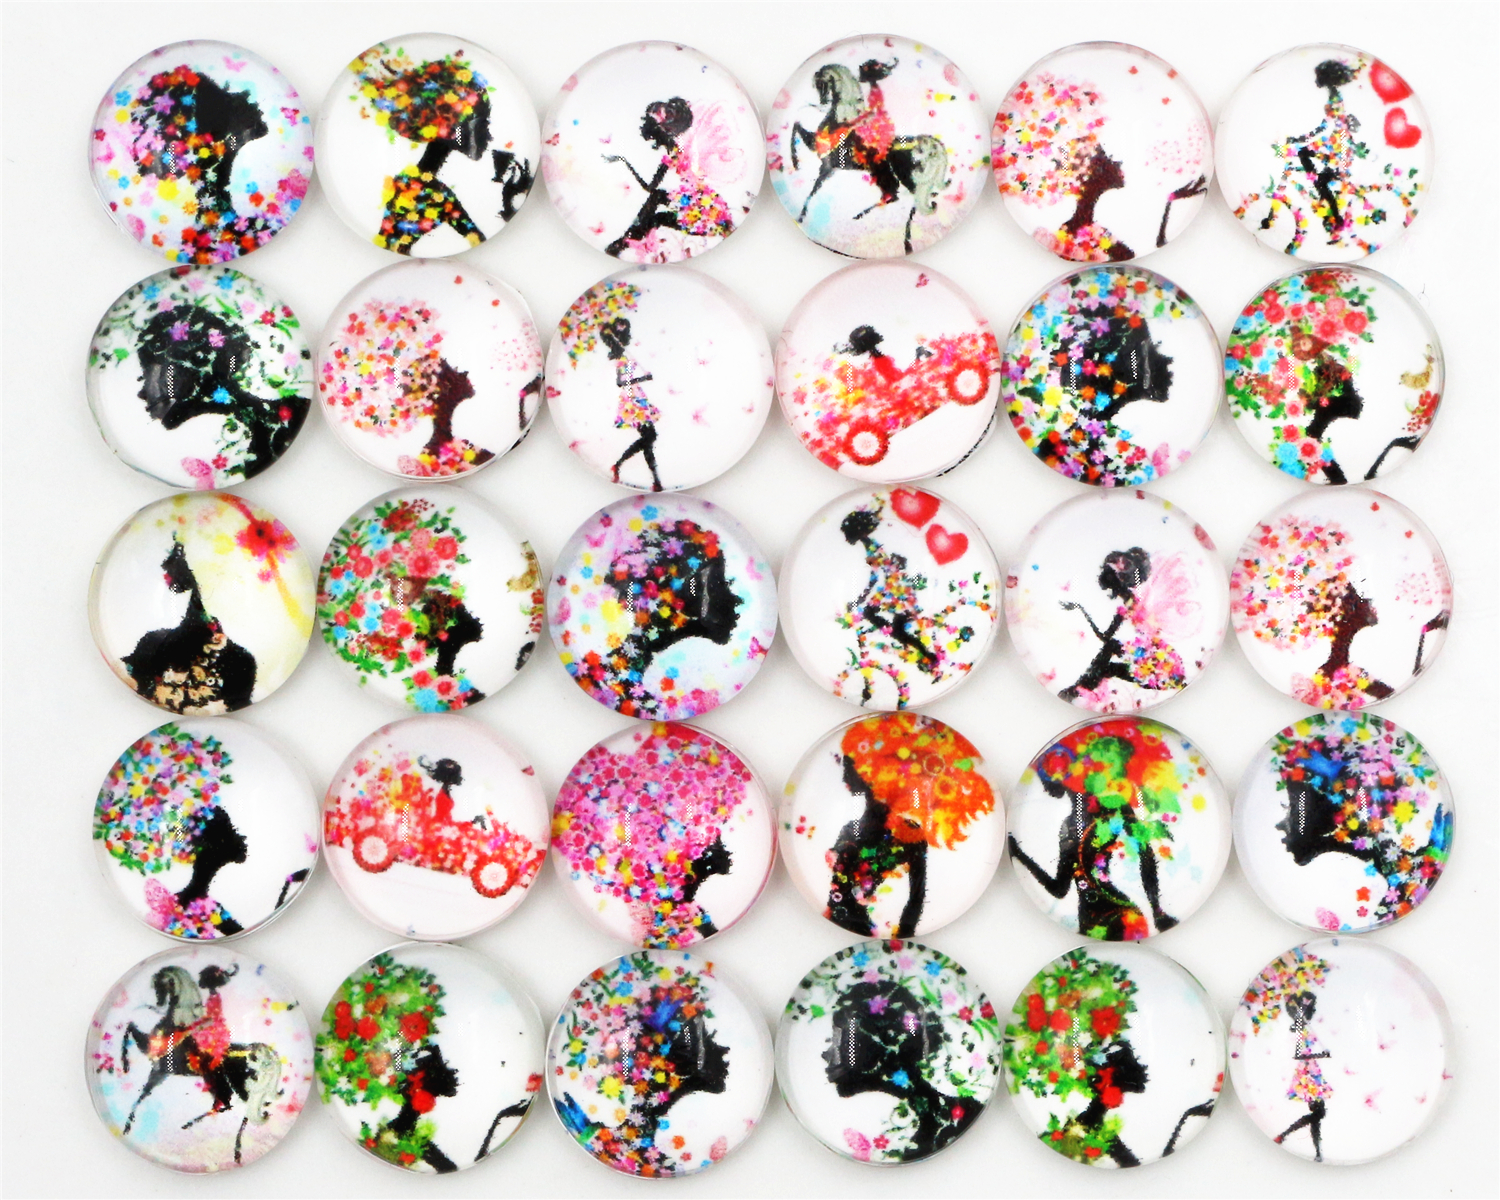 50pcs/Lot 12mm Photo Glass Cabochons Mixed Color Black Girl Cabochons For Bracelet Earrings Necklace Bases Settings-E1-12